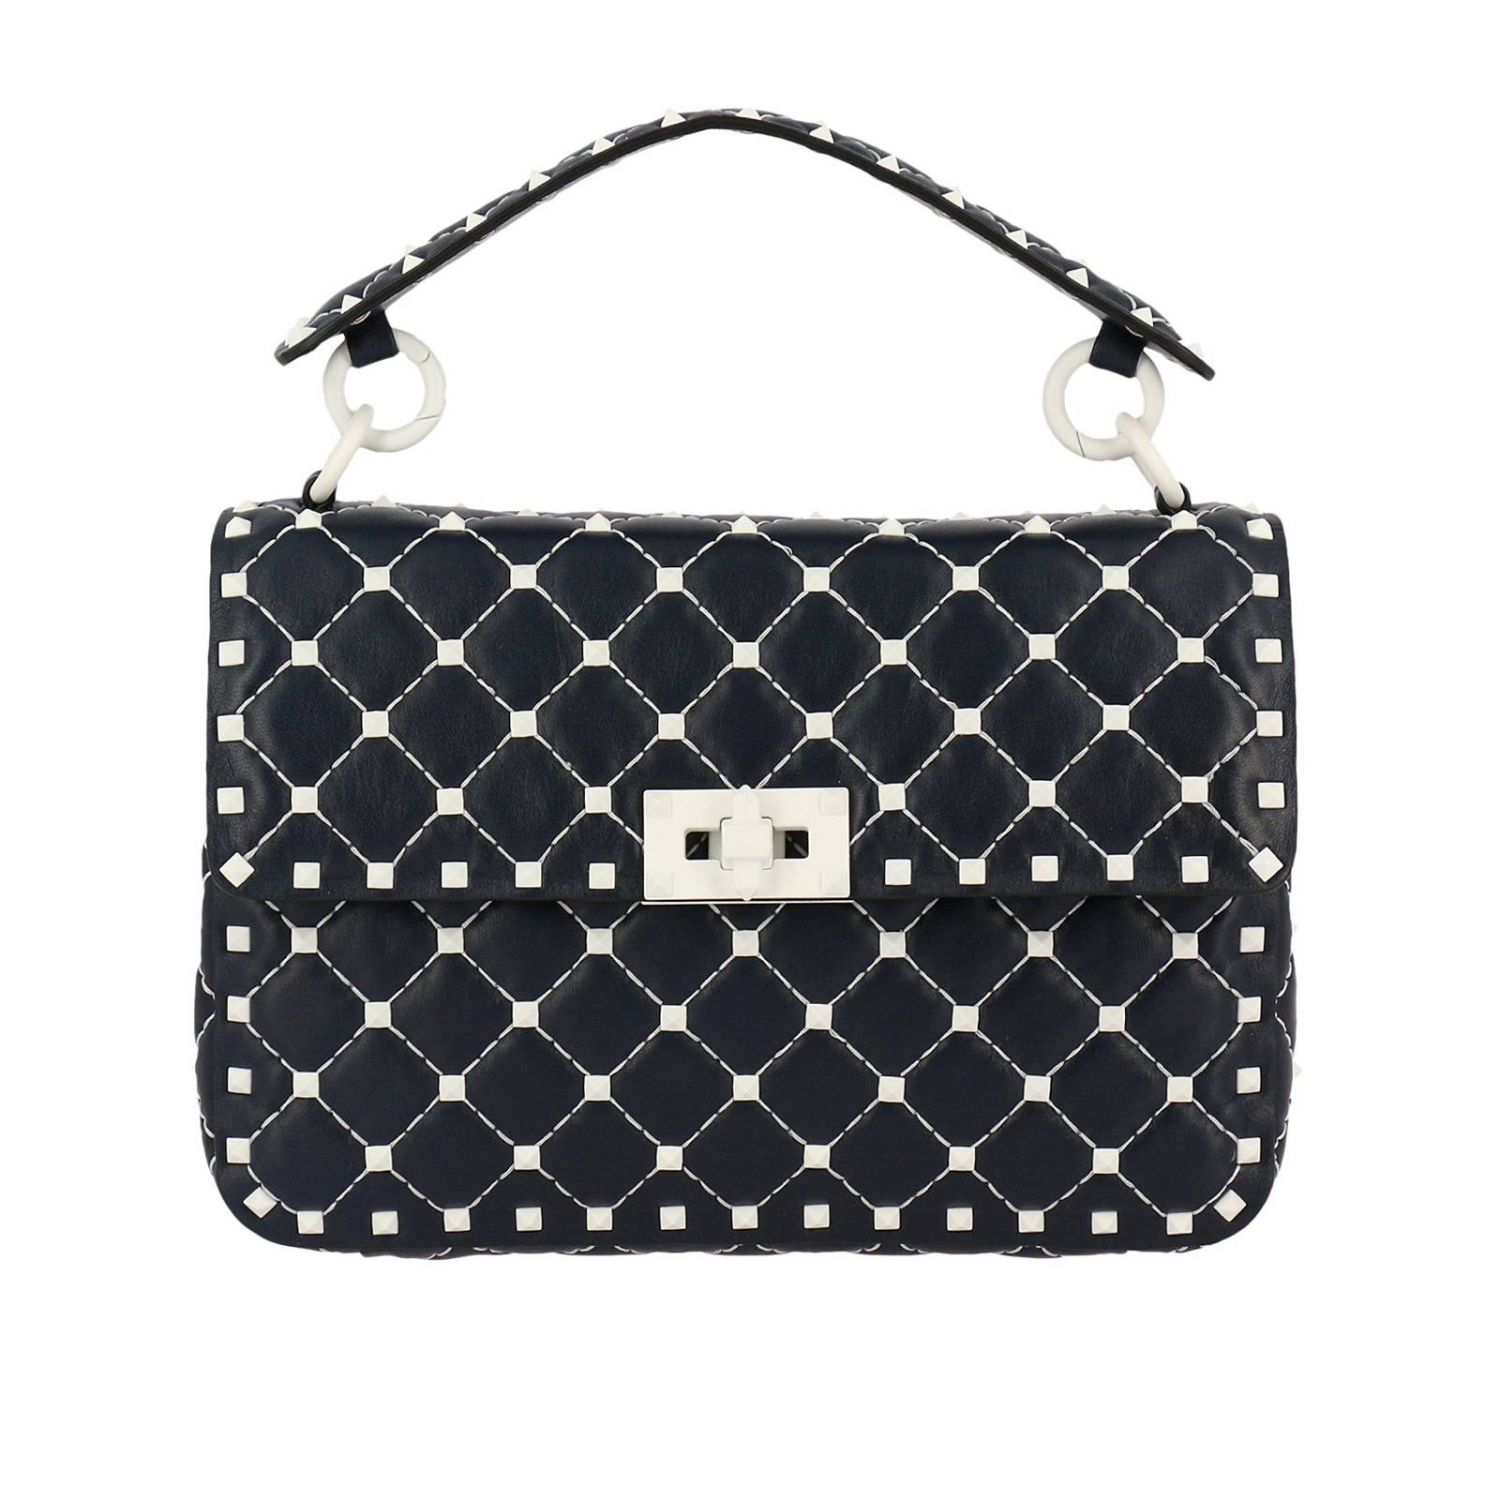 Handbag Valentino Free Rockstud Spike Medium Bag In Genuine Leather With Micro Studs And Shoulder Strap 8286789